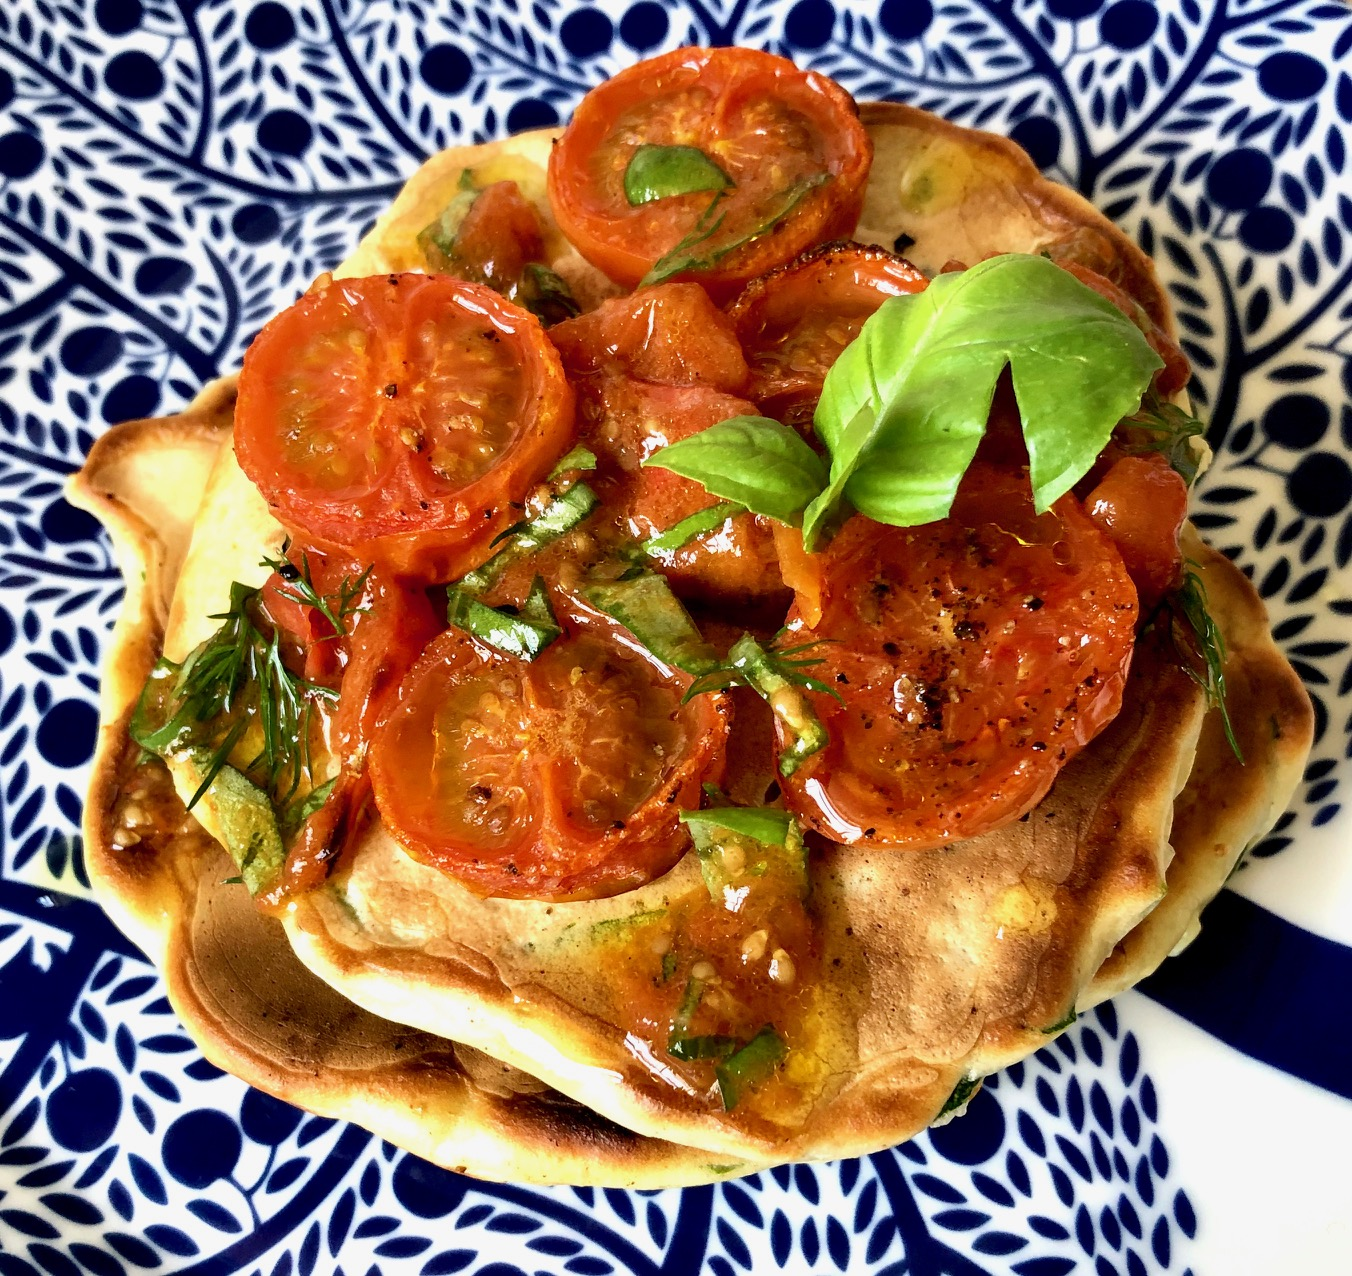 Day 16: Courgette Pancakes with Roasted Tomatoes